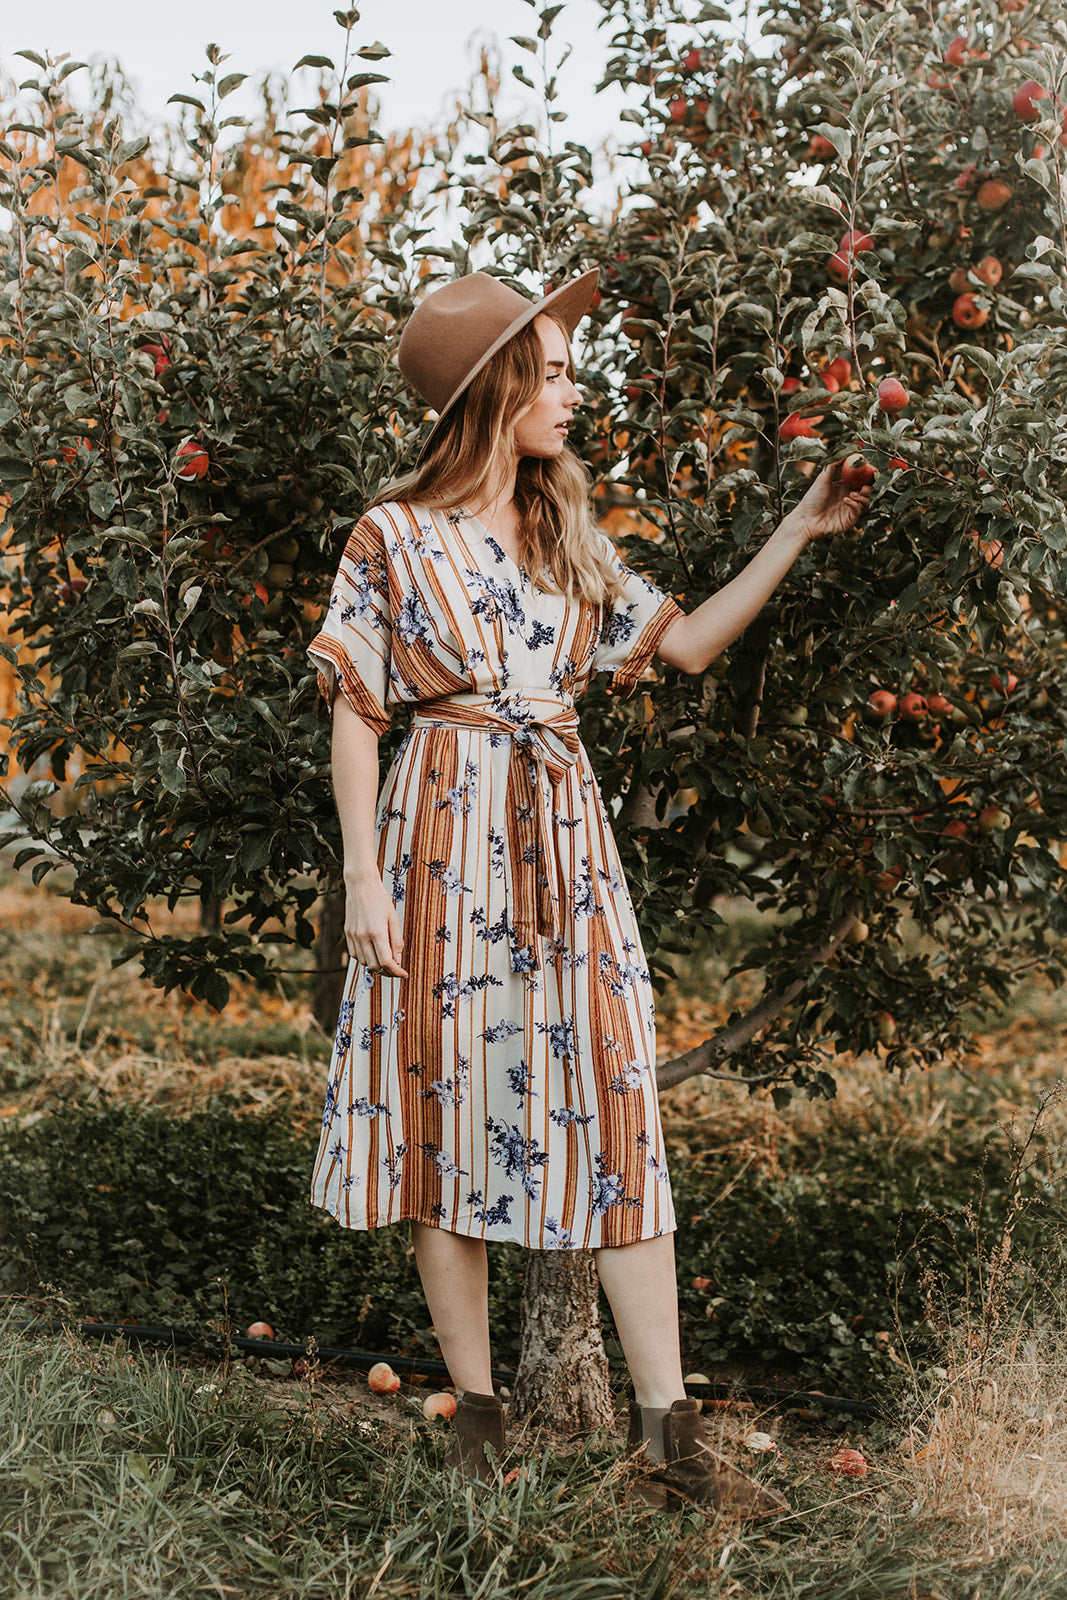 The Edina Striped Floral Tie Dress in Natural